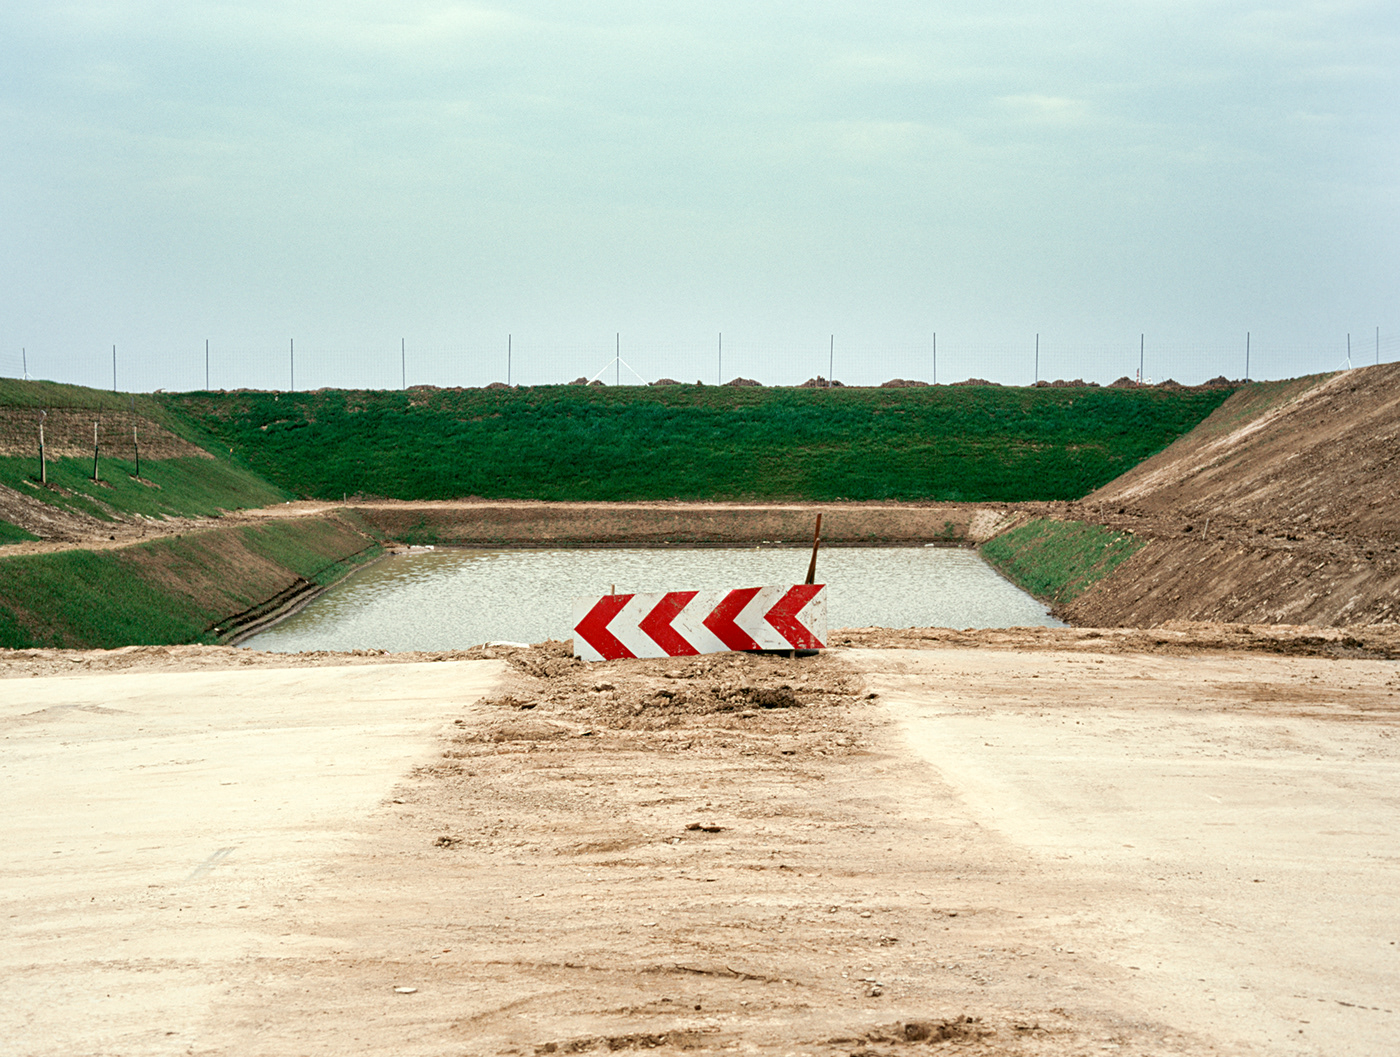 Photography  Landscape industry Mining open pit mining roadconstruction